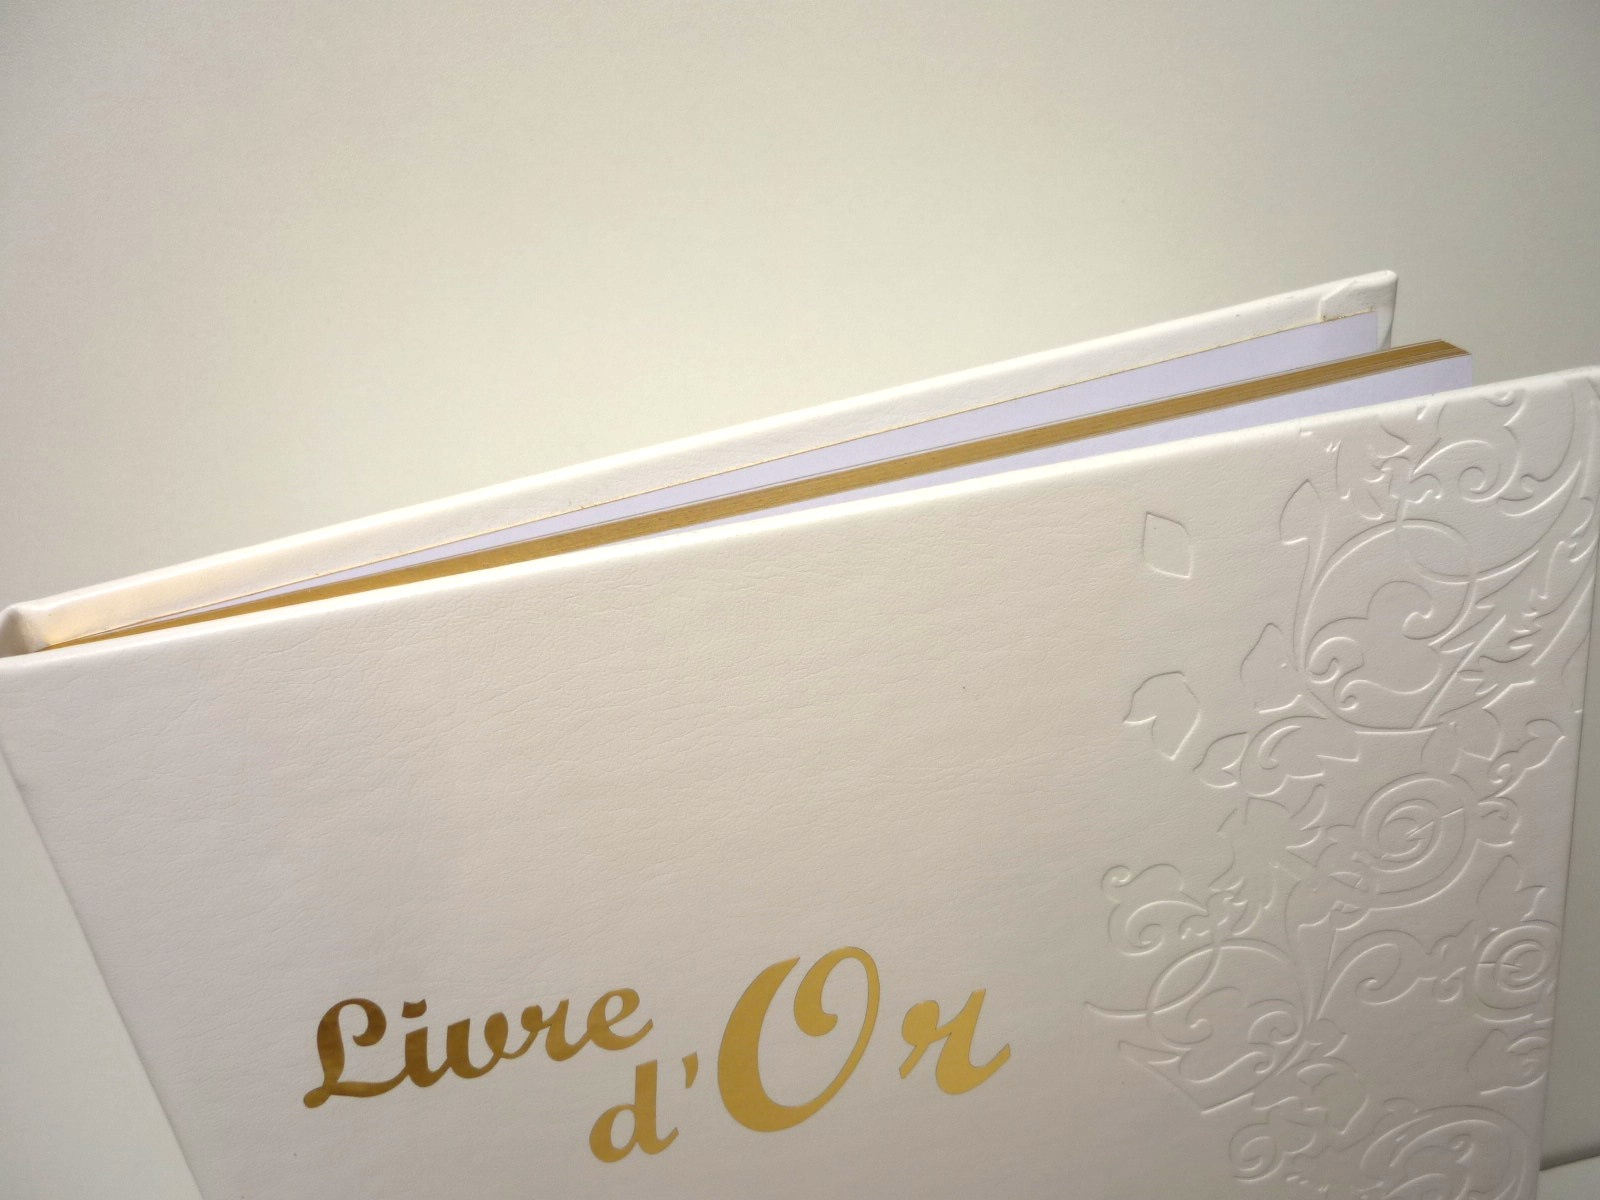 Livre d'Or Bar/Bat Mitzvah